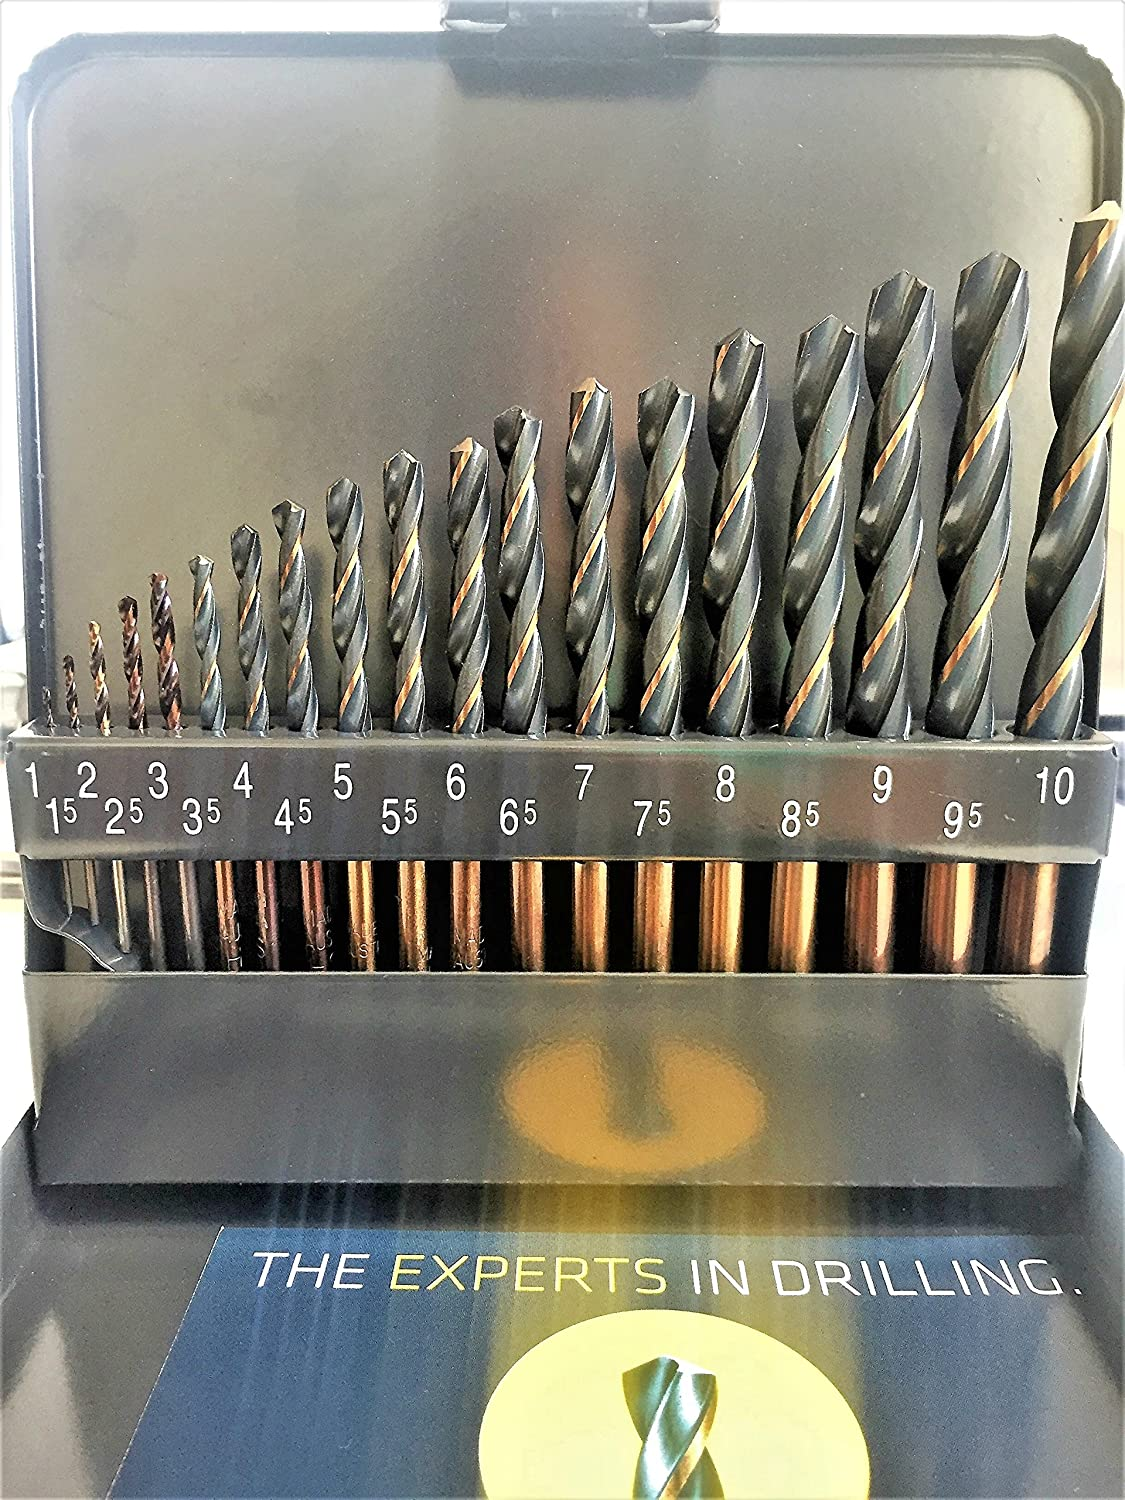 MaxTool 3//8-16 Spiral Point Tap; 16TPI HSS M2 Fully Ground Right Hand; SPF02W01R24